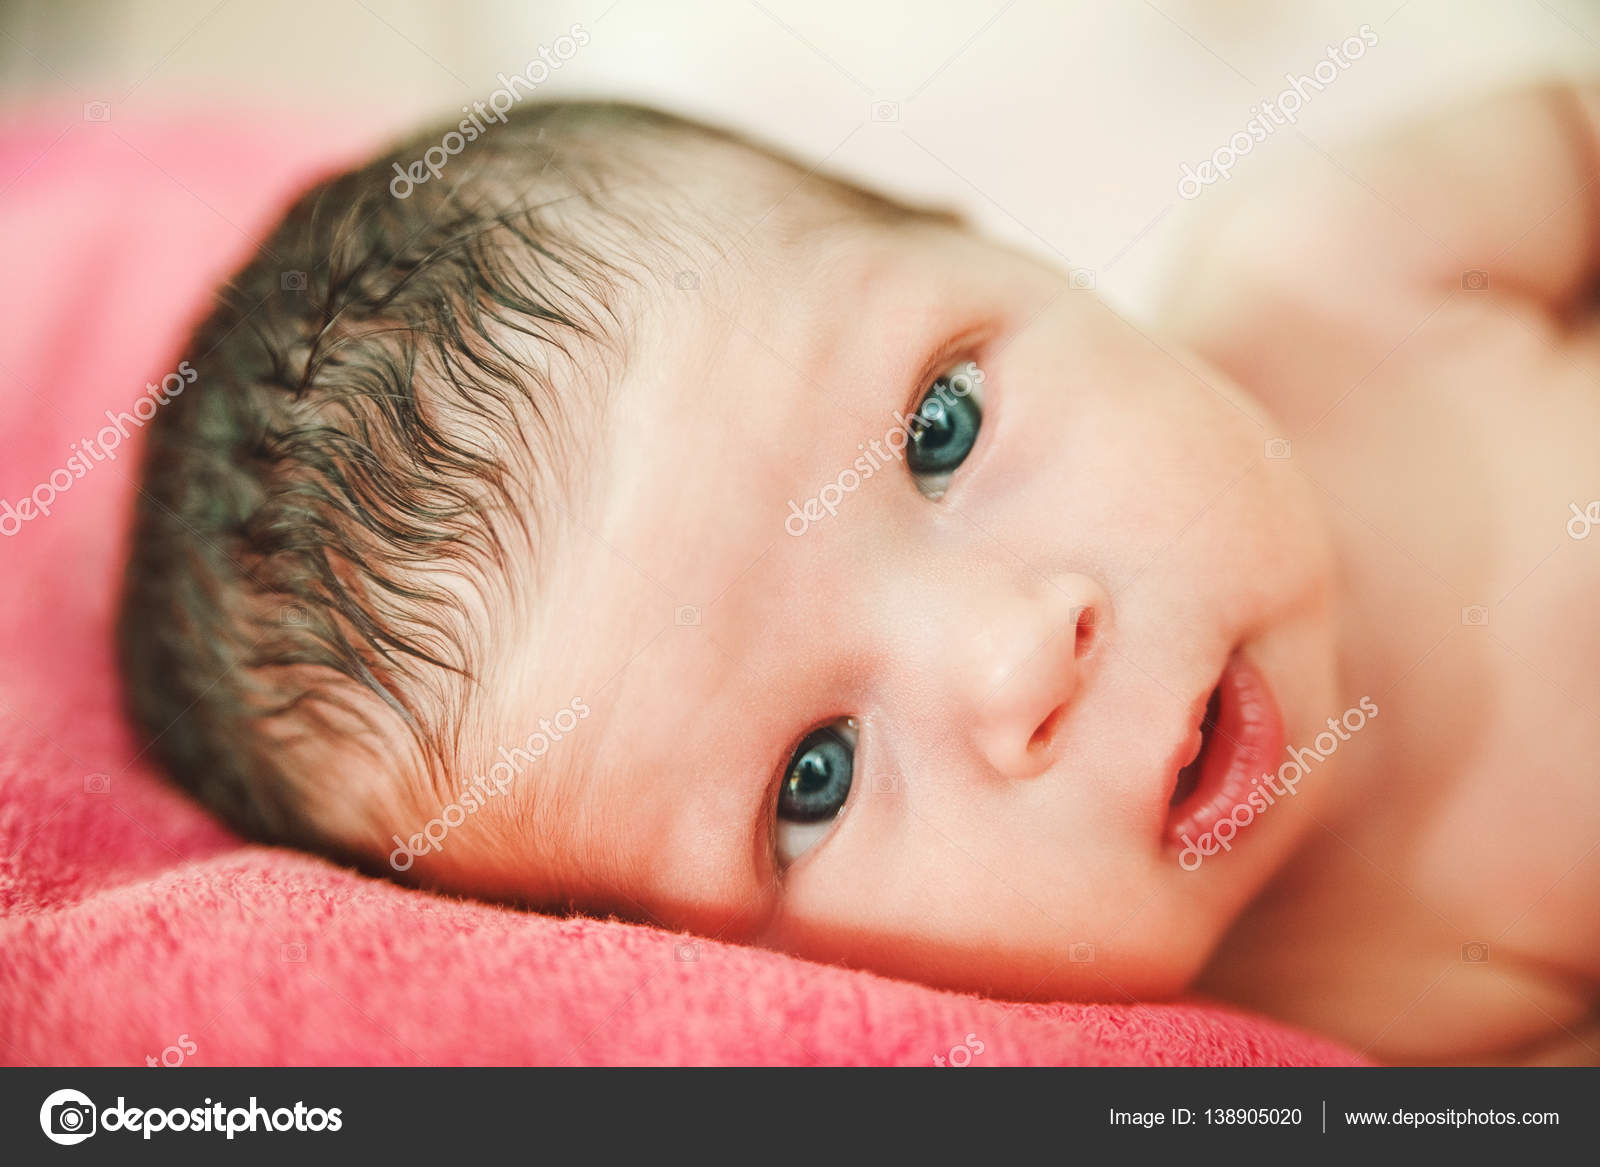 825f1678c Funny Face of Newborn Cute Baby Girl.Interesting Look.Selective ...